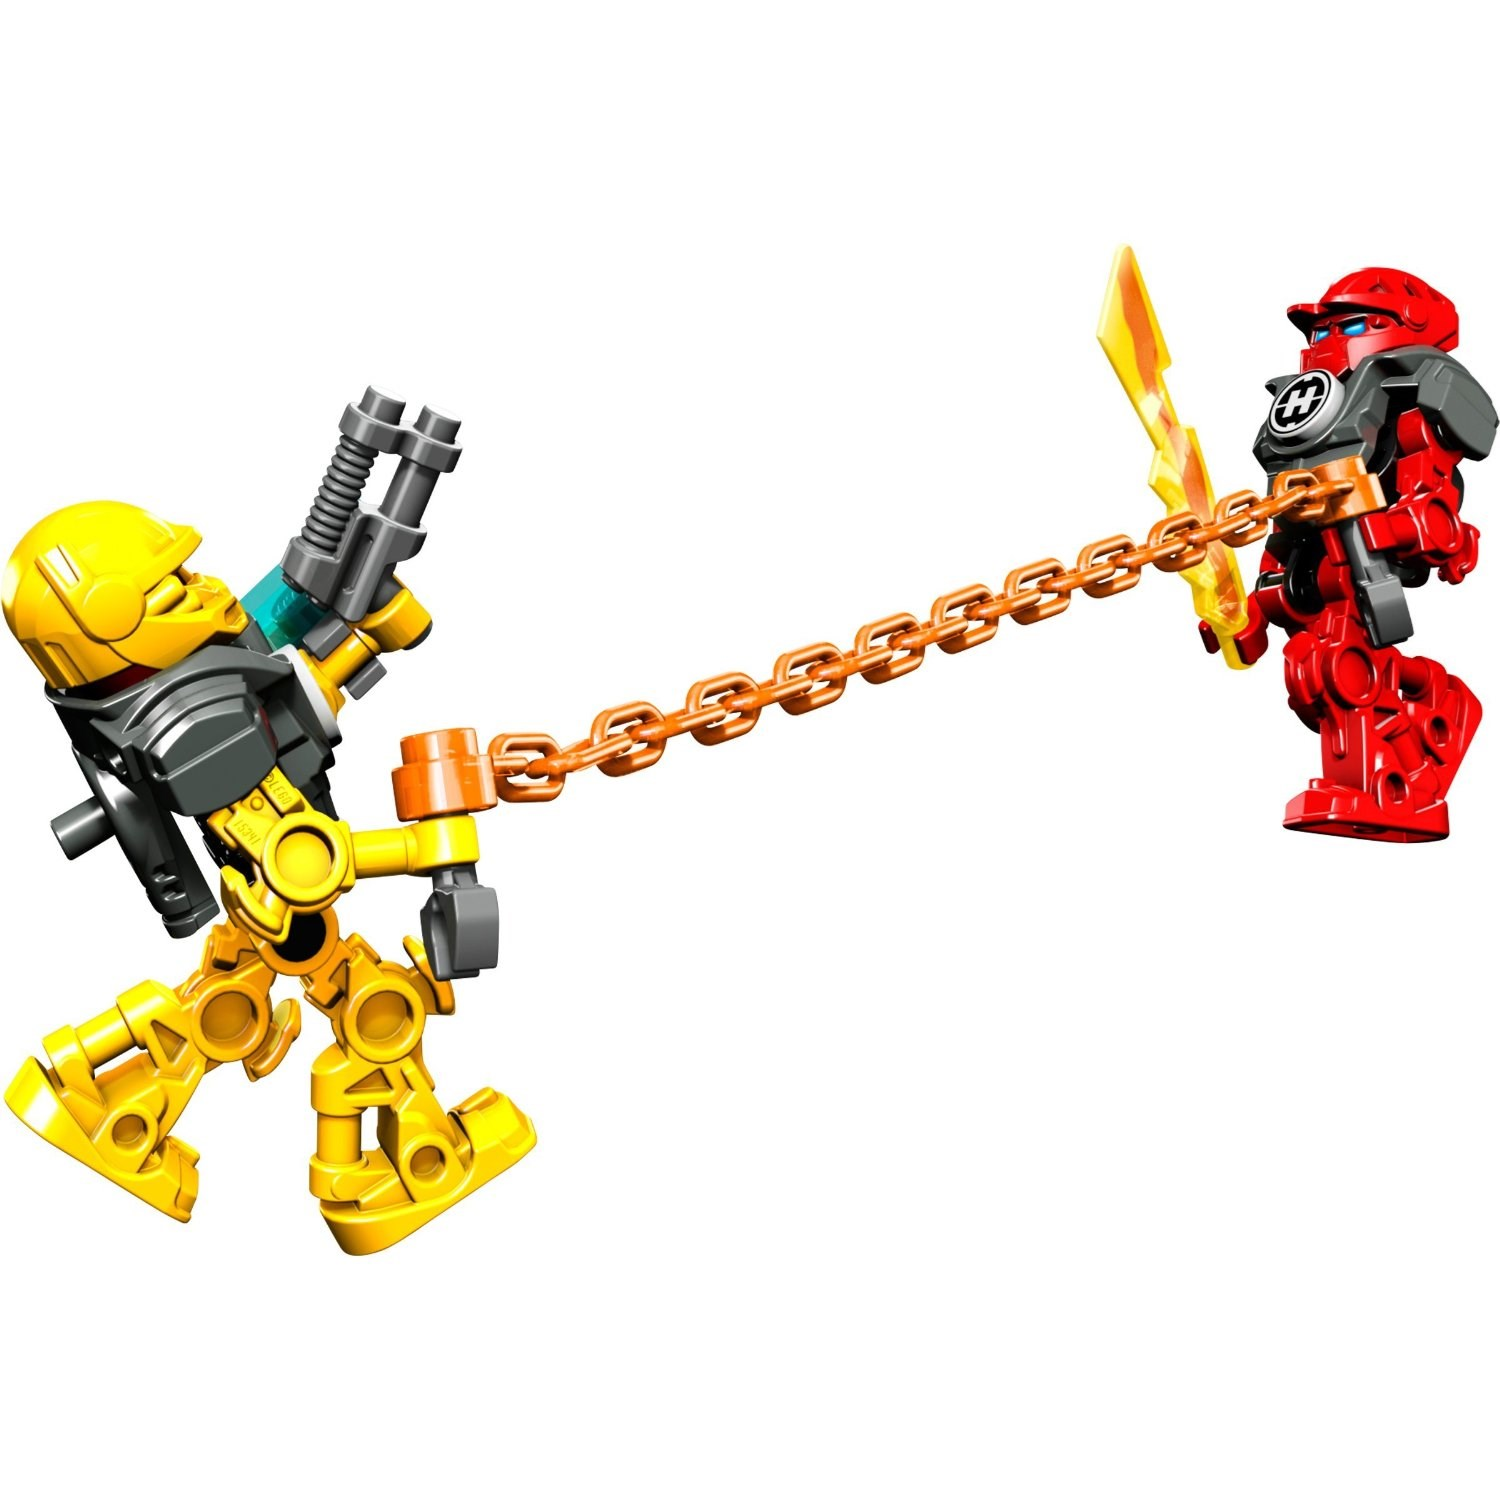 Do choi Lego 44021 - SPLITTER BEAST VS FURNO & EVO